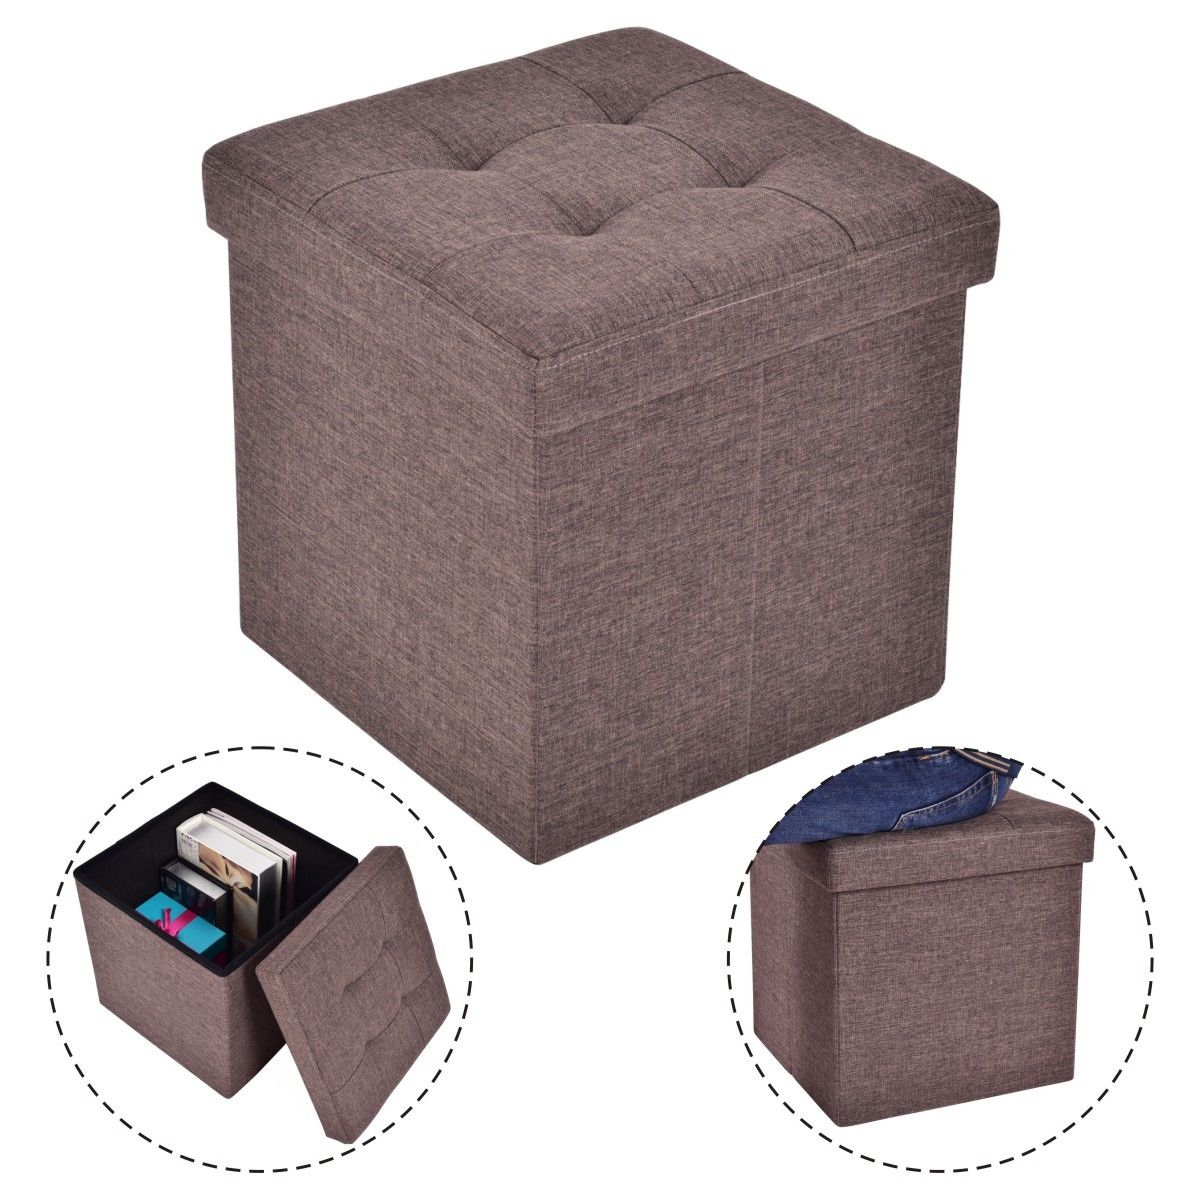 Folding Storage Cube Ottoman Seat Stool Box Footrest Furniture Decor Brown New